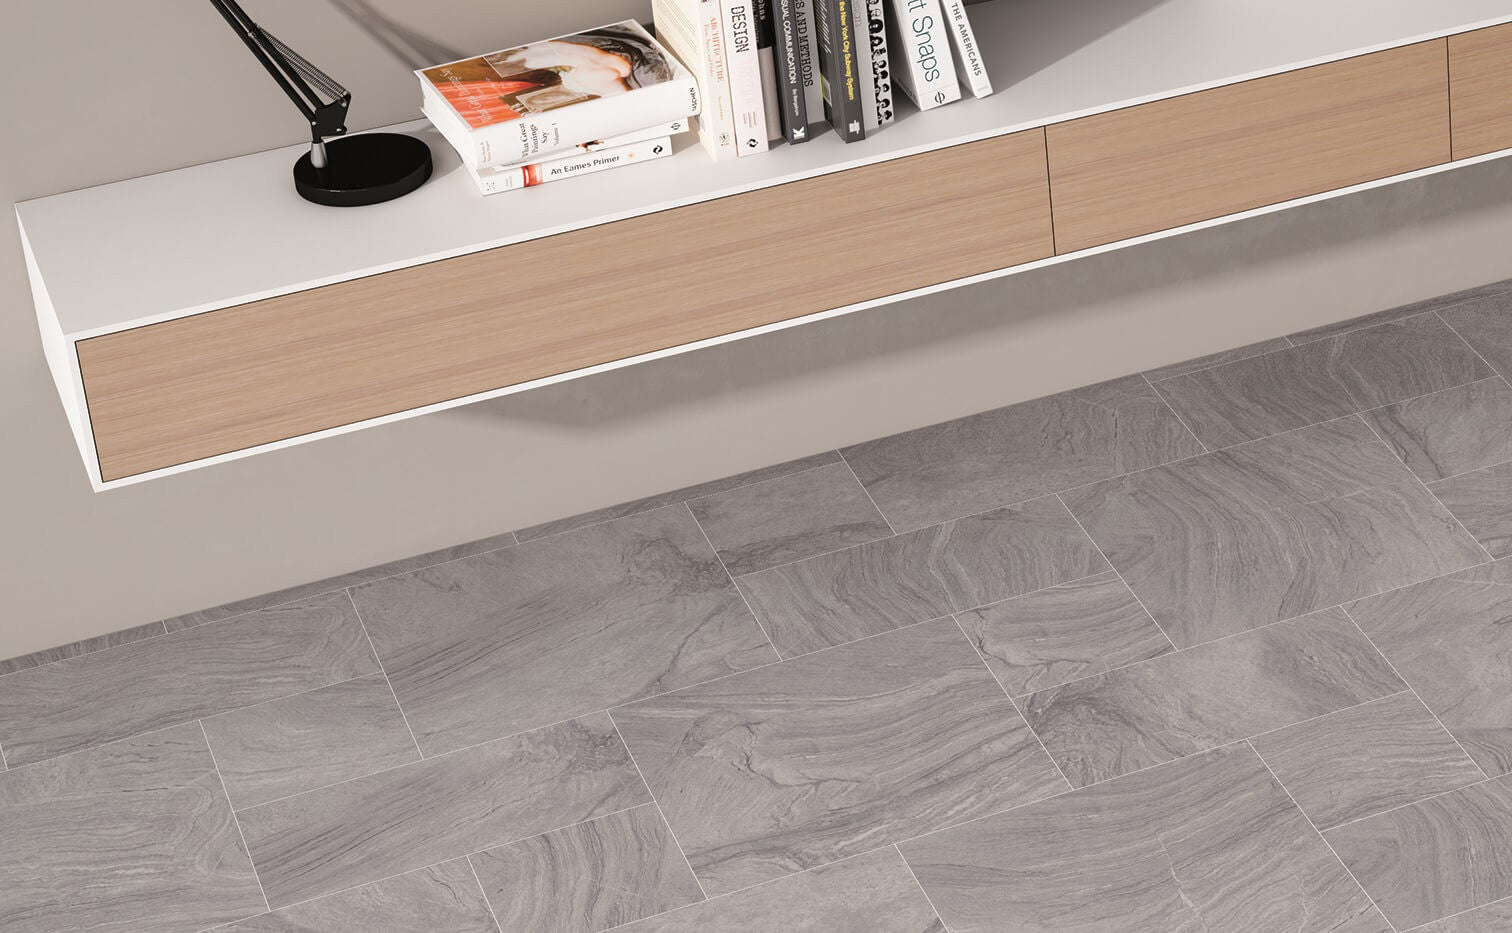 Sandstone effect grey spanish floor tiles by gayafores varana grey sandstone effect floor tiles in mixed sizes with book shelf dailygadgetfo Choice Image